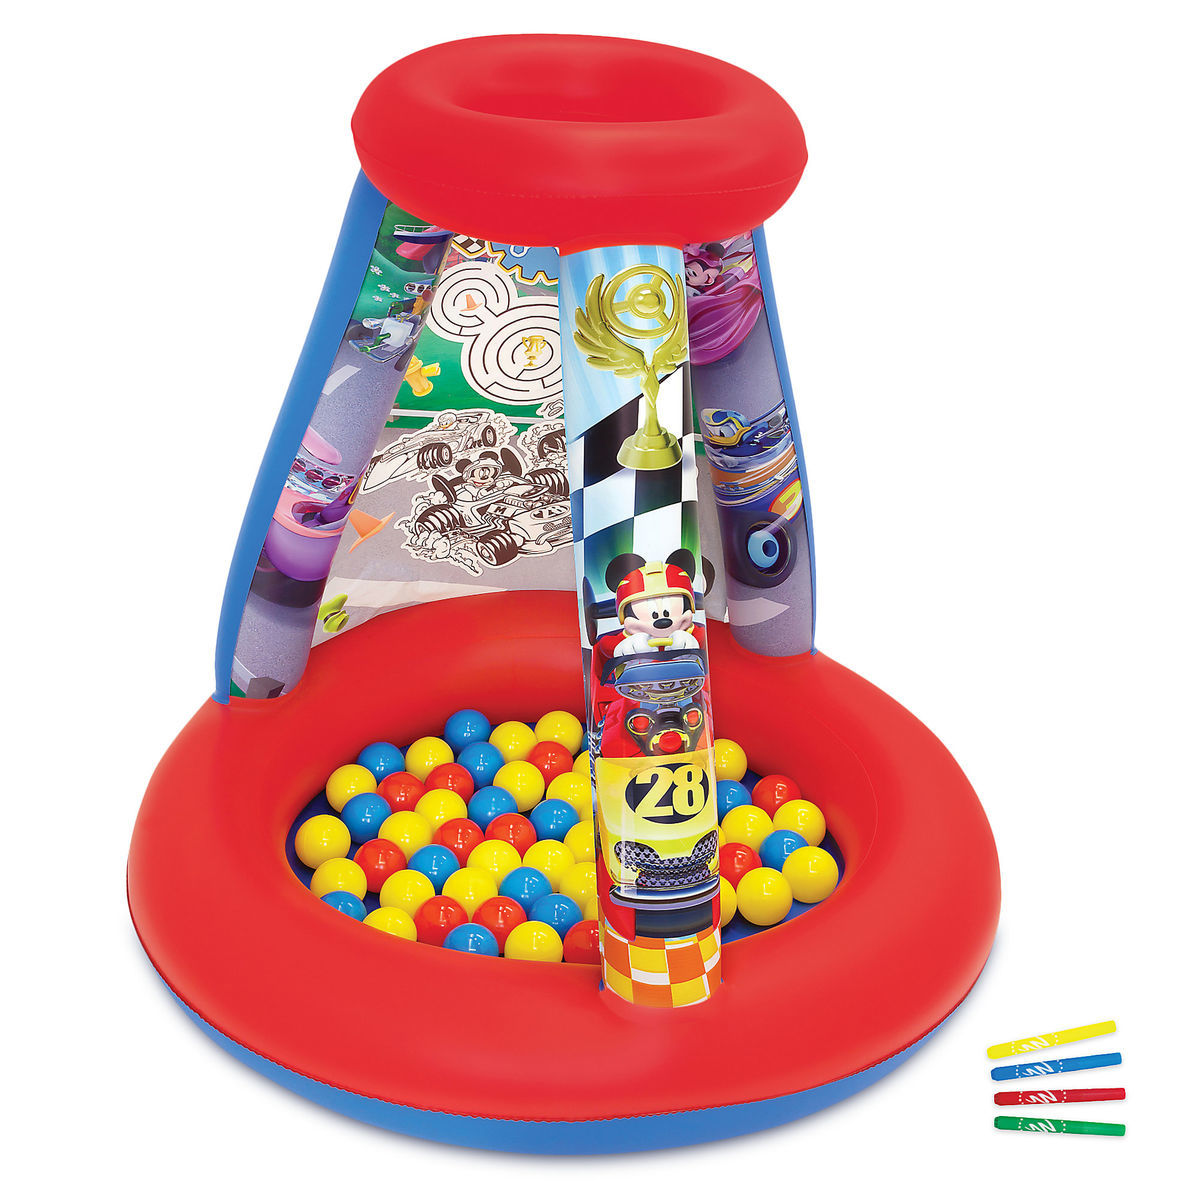 402c36f65e89 Product Image of Mickey and the Roadster Racers Color  n  Play Activity  Playland Set